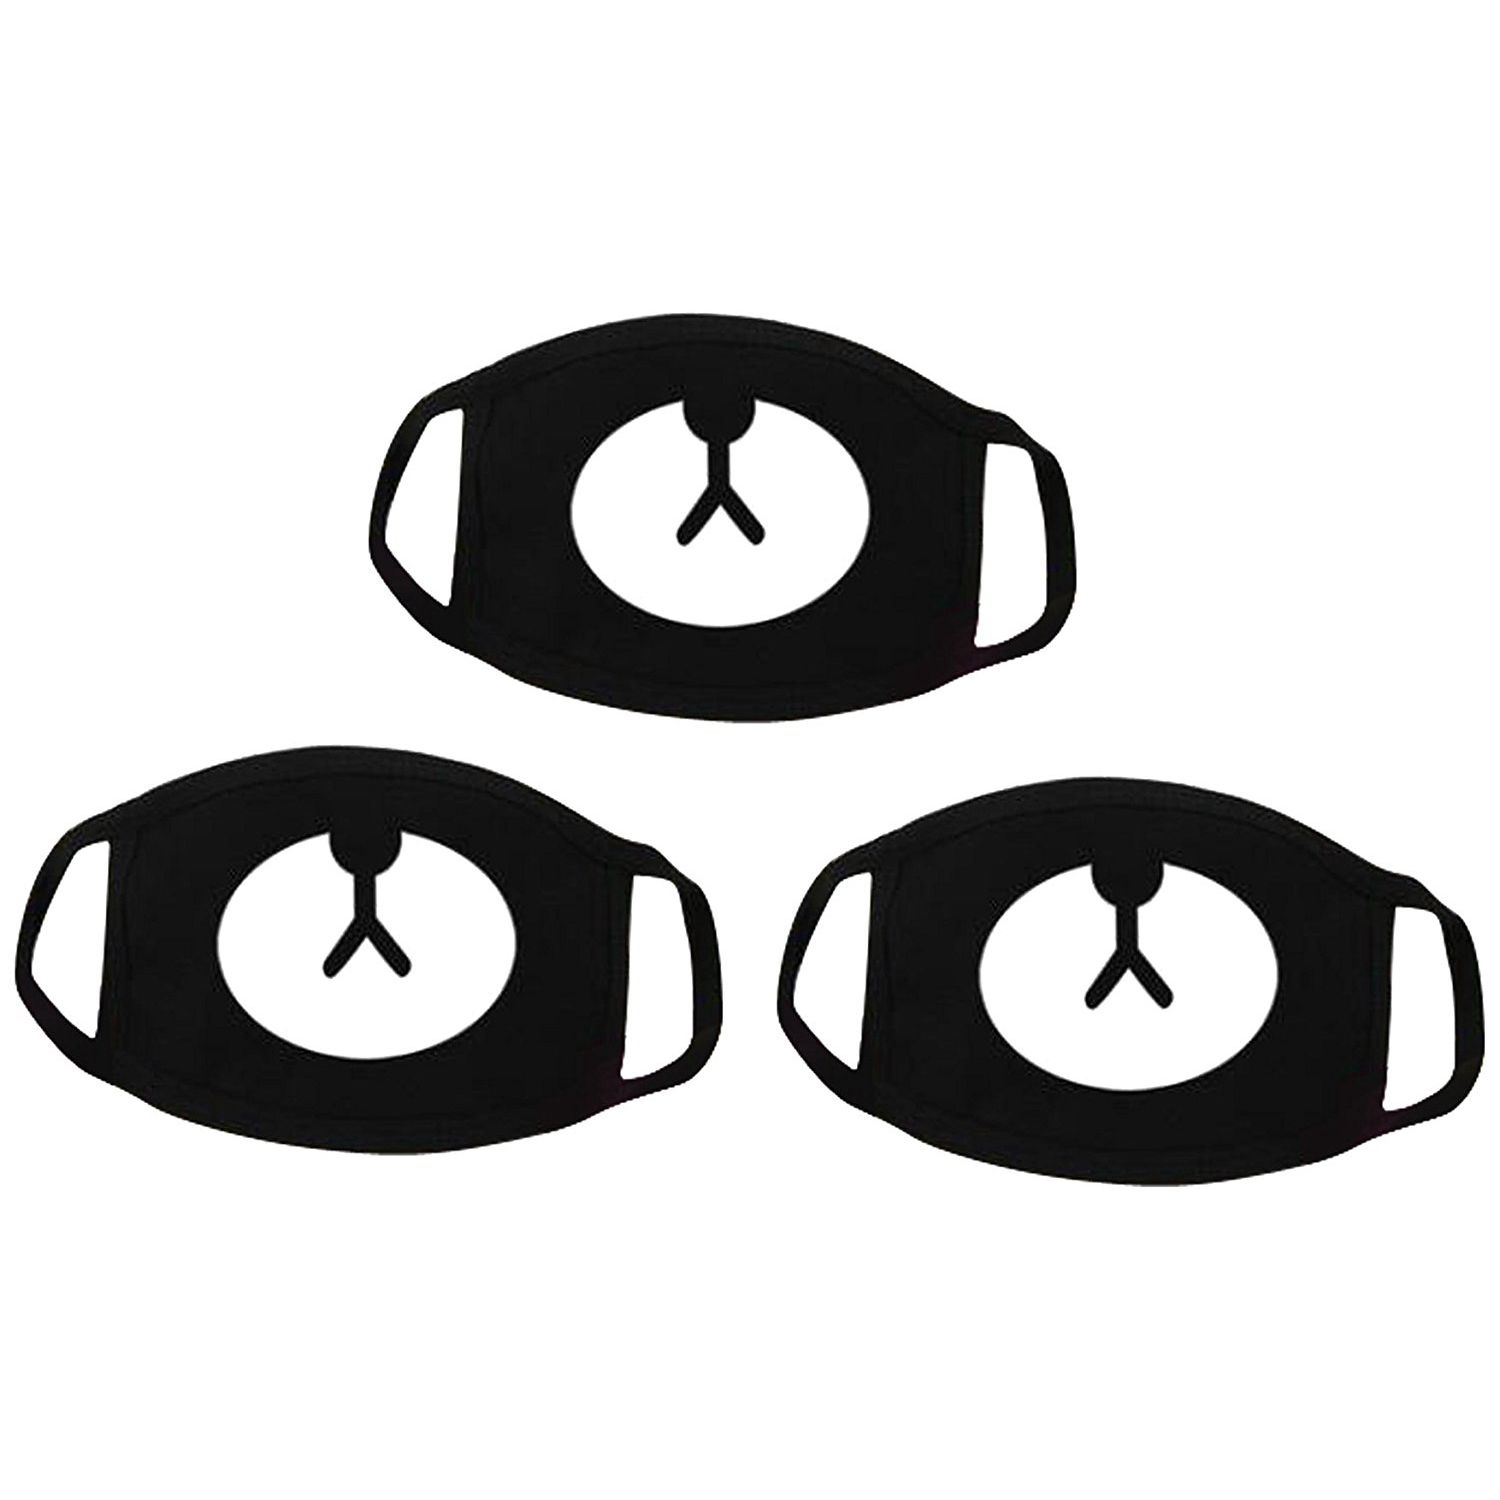 3 Pack Teeth Pattern Cute Unisex Cotton Blend Anti Dust Face Mouth Mask Black For Man Woman